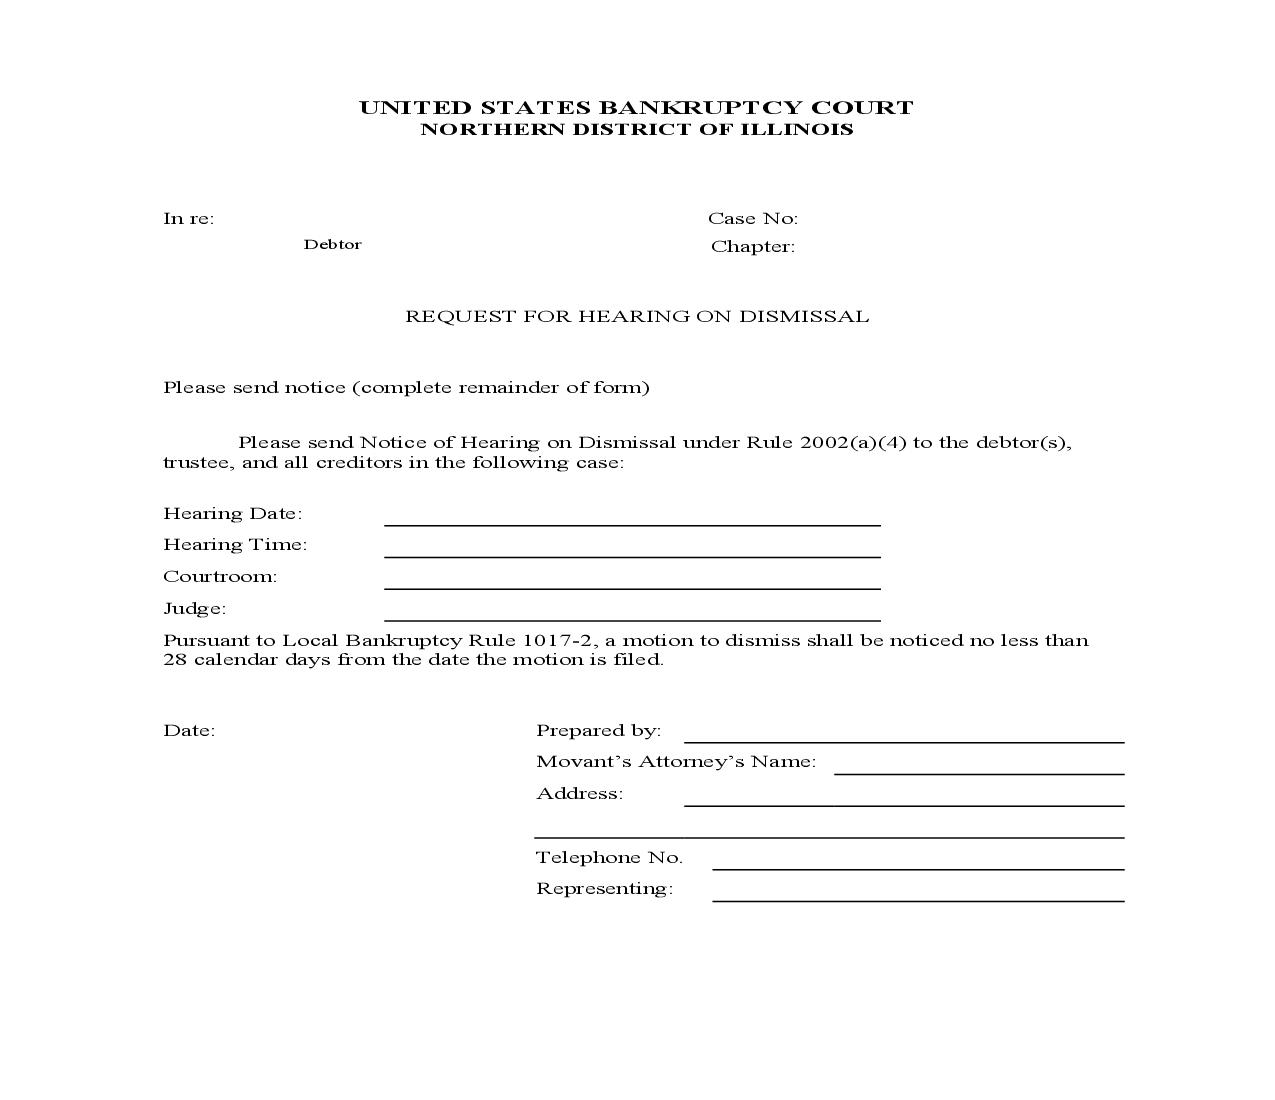 Request For Hearing On Dismissal-Chapter 7 | Pdf Fpdf Doc Docx | Illinois